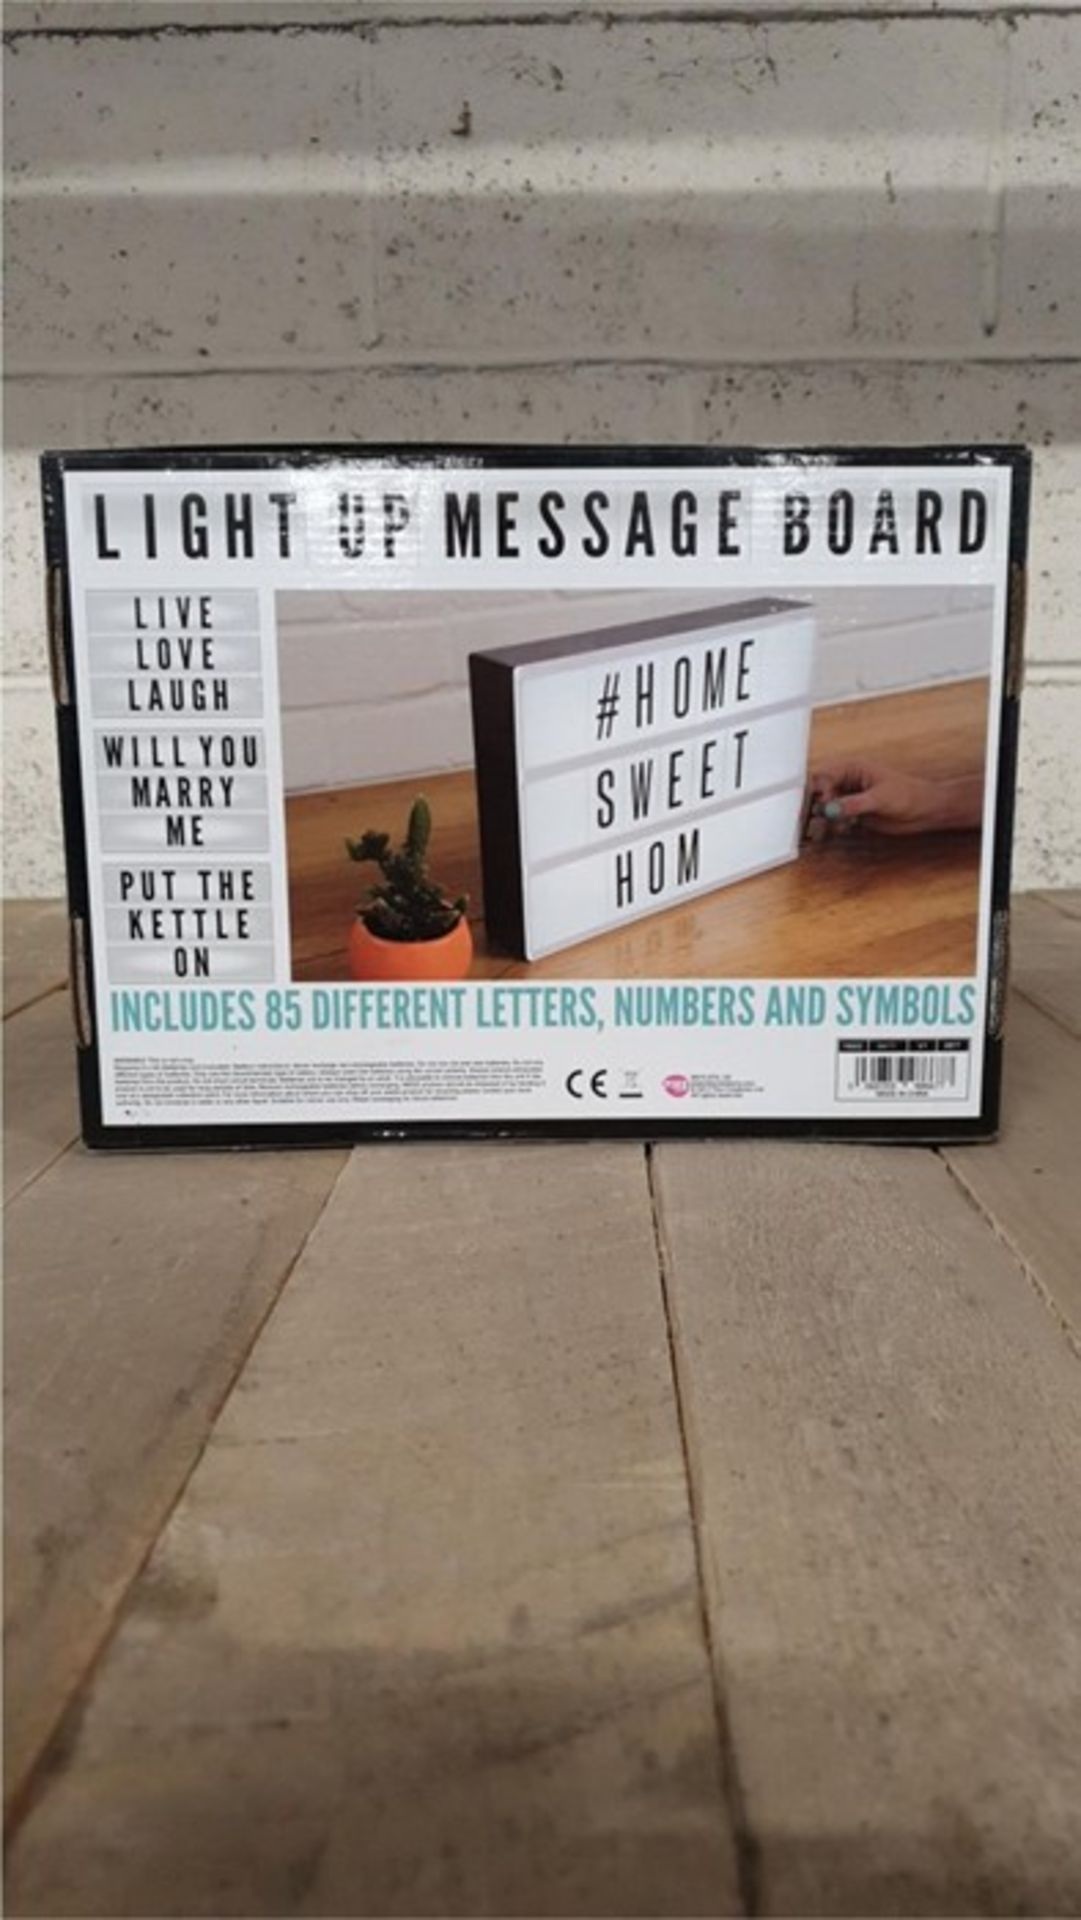 Lot 33 - 1 BOXED LIGHT UP MESSAGE BOARD (VIEWING HIGHLY RECOMMENDED)